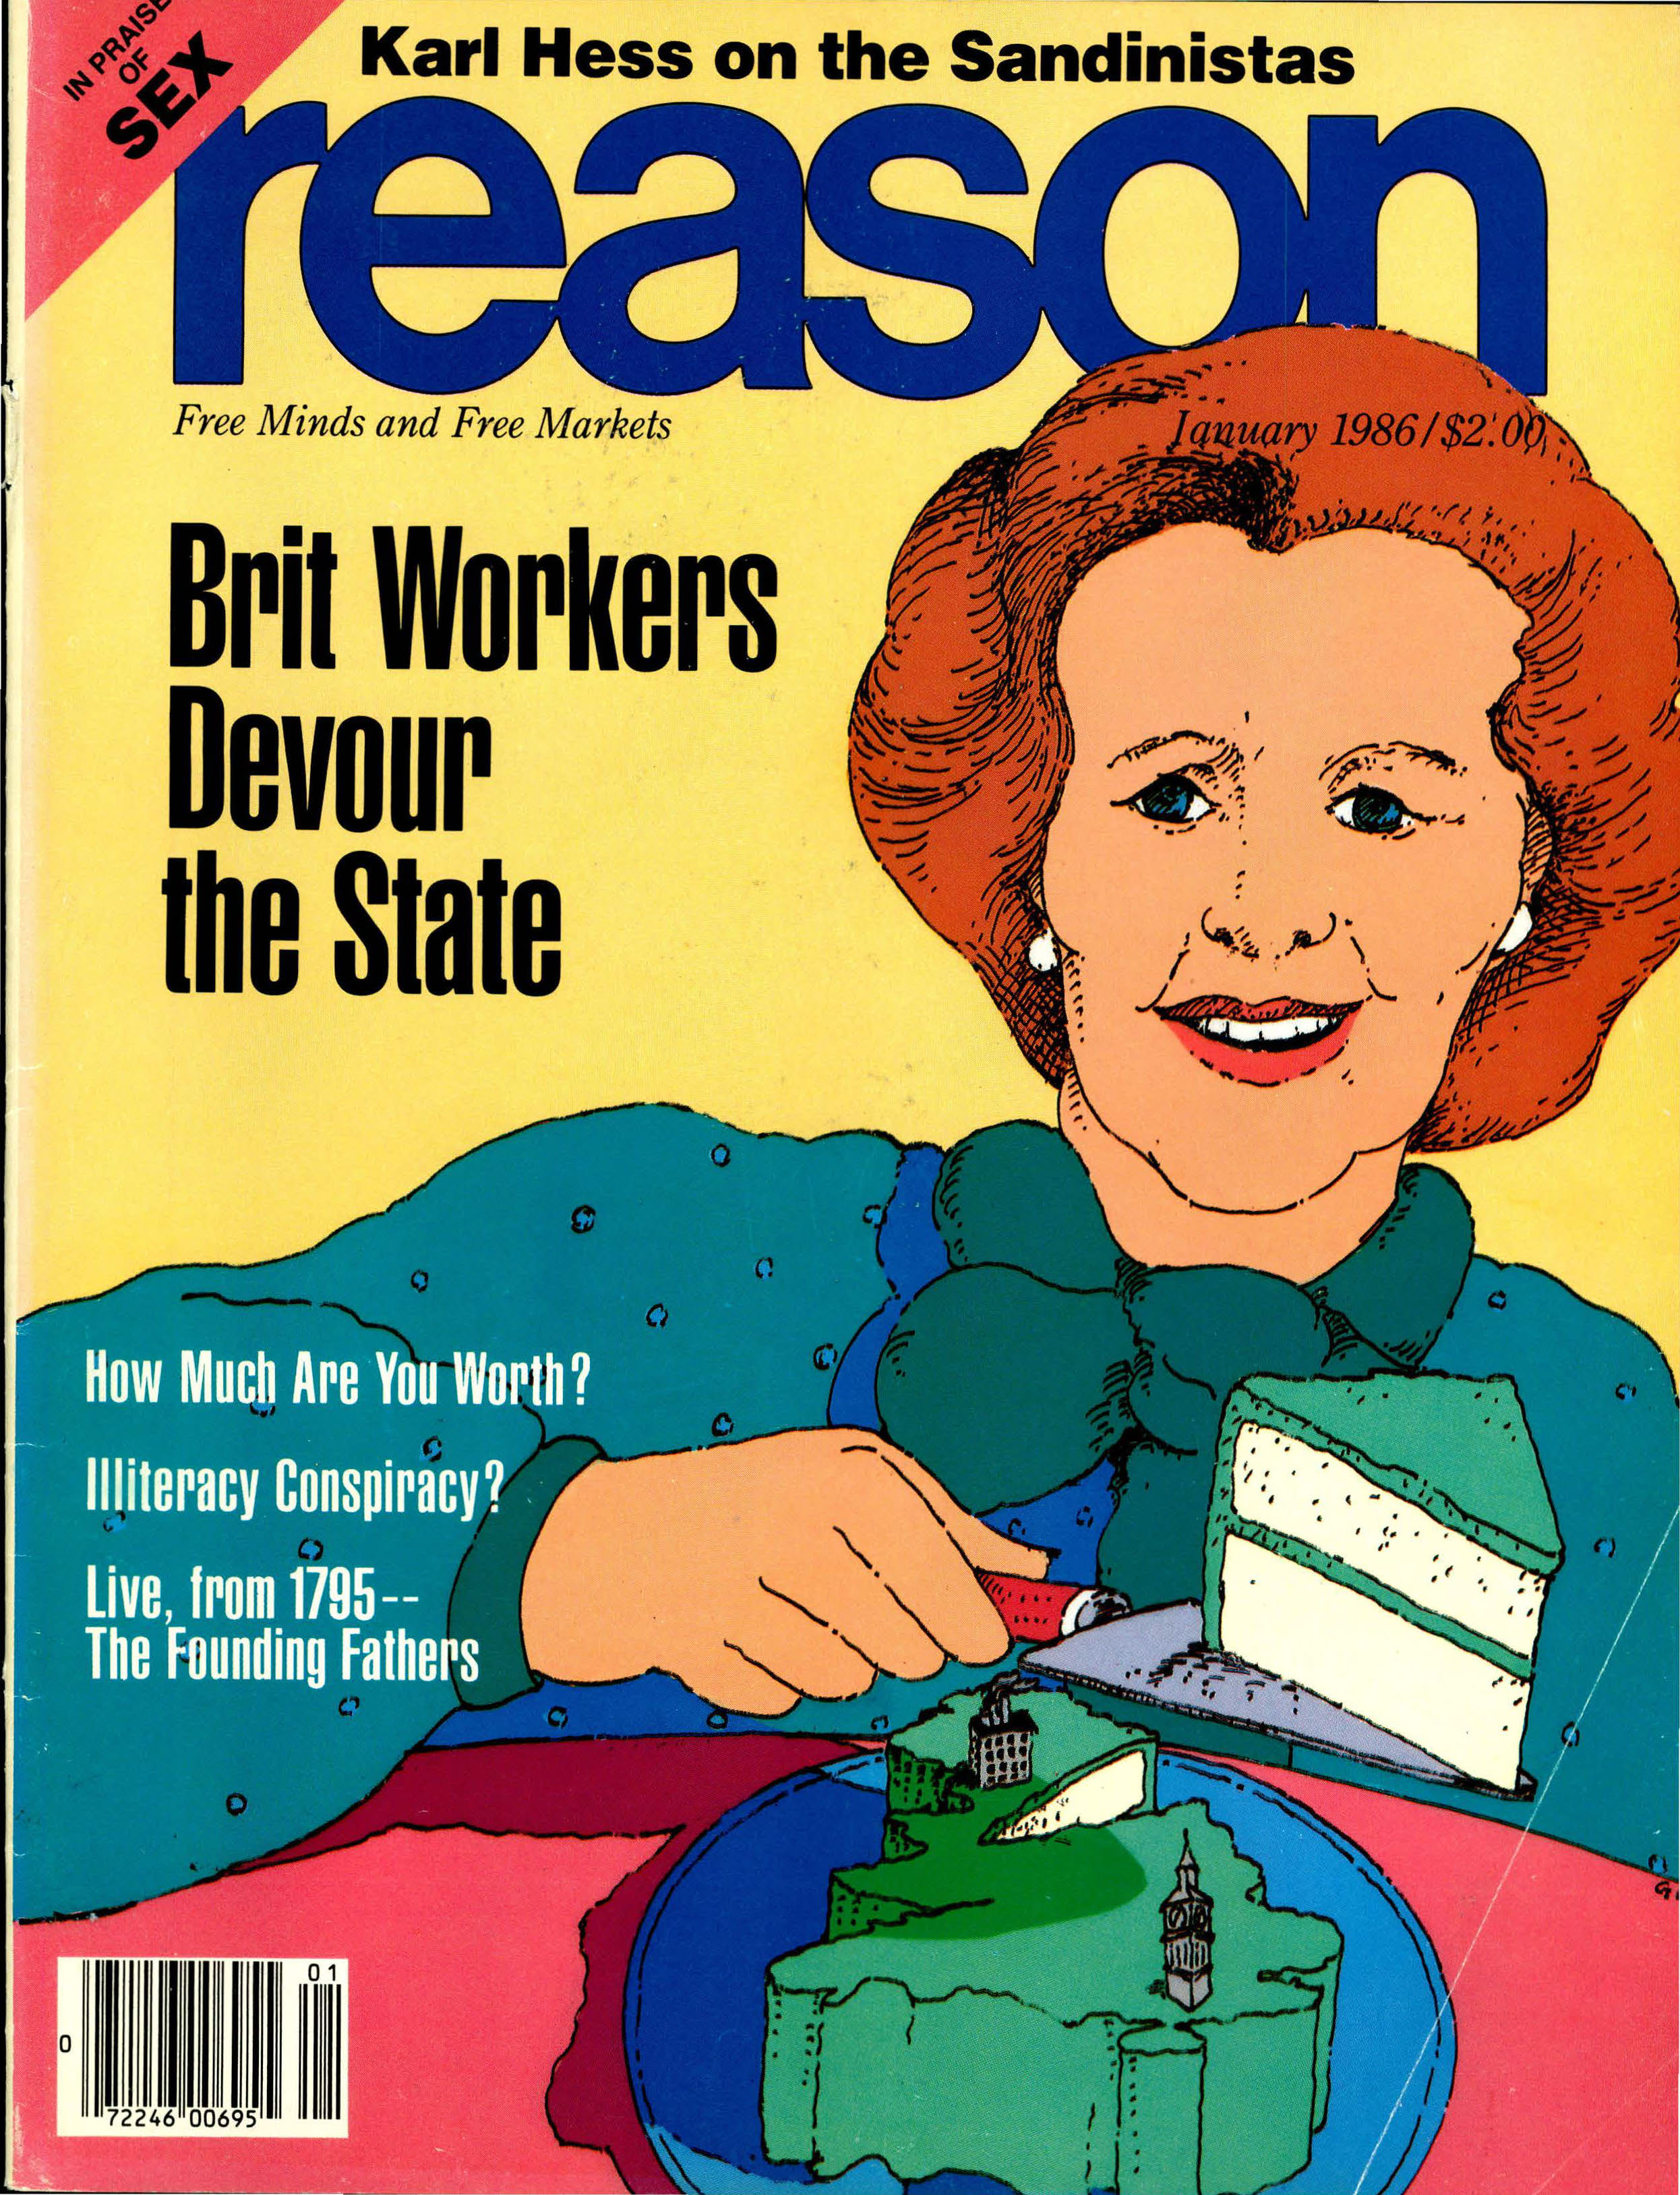 Reason Magazine, January 1986 cover image